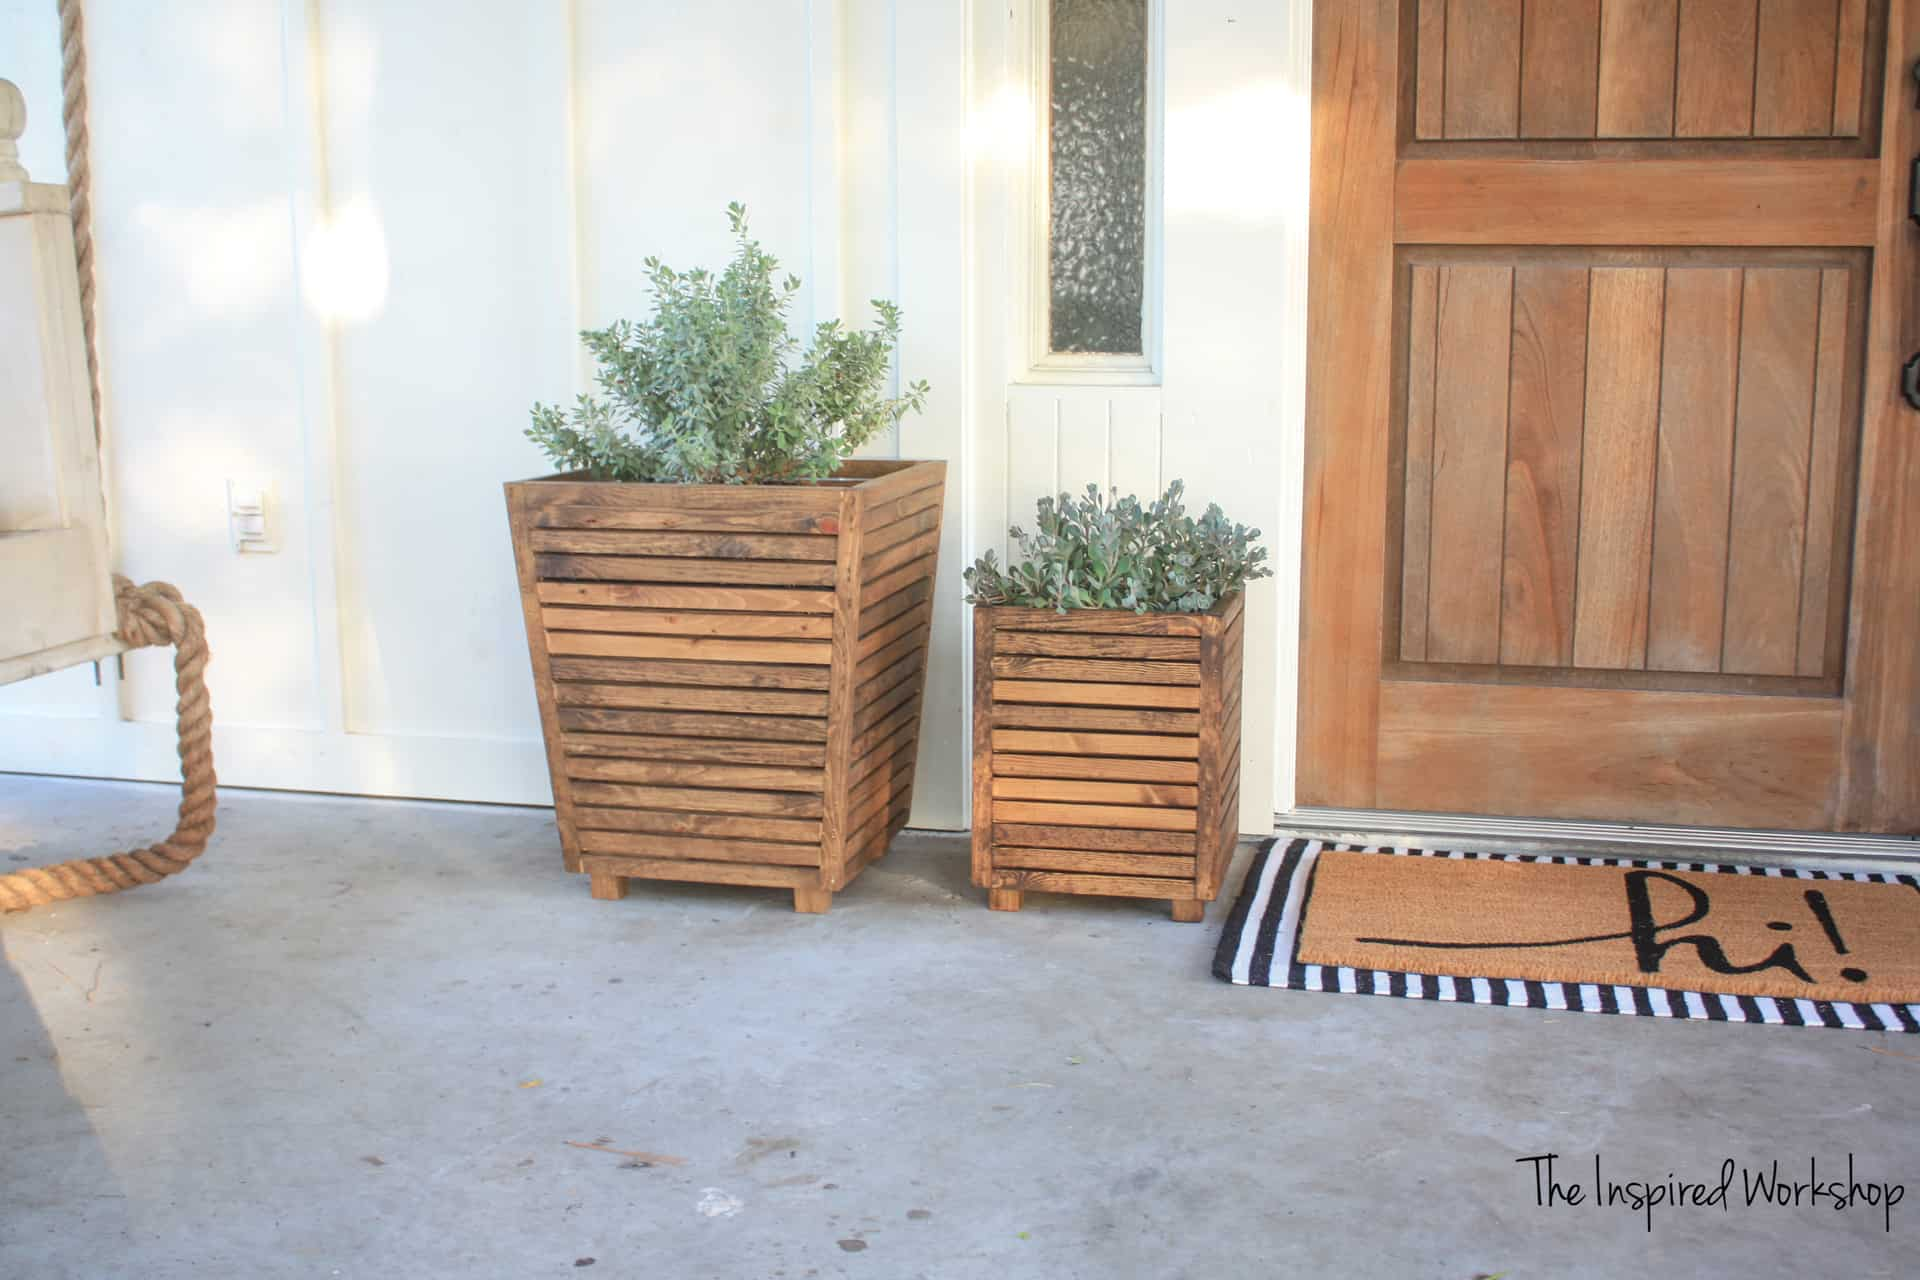 Front Porch Decor - Beautiful wooden planters by the front door!